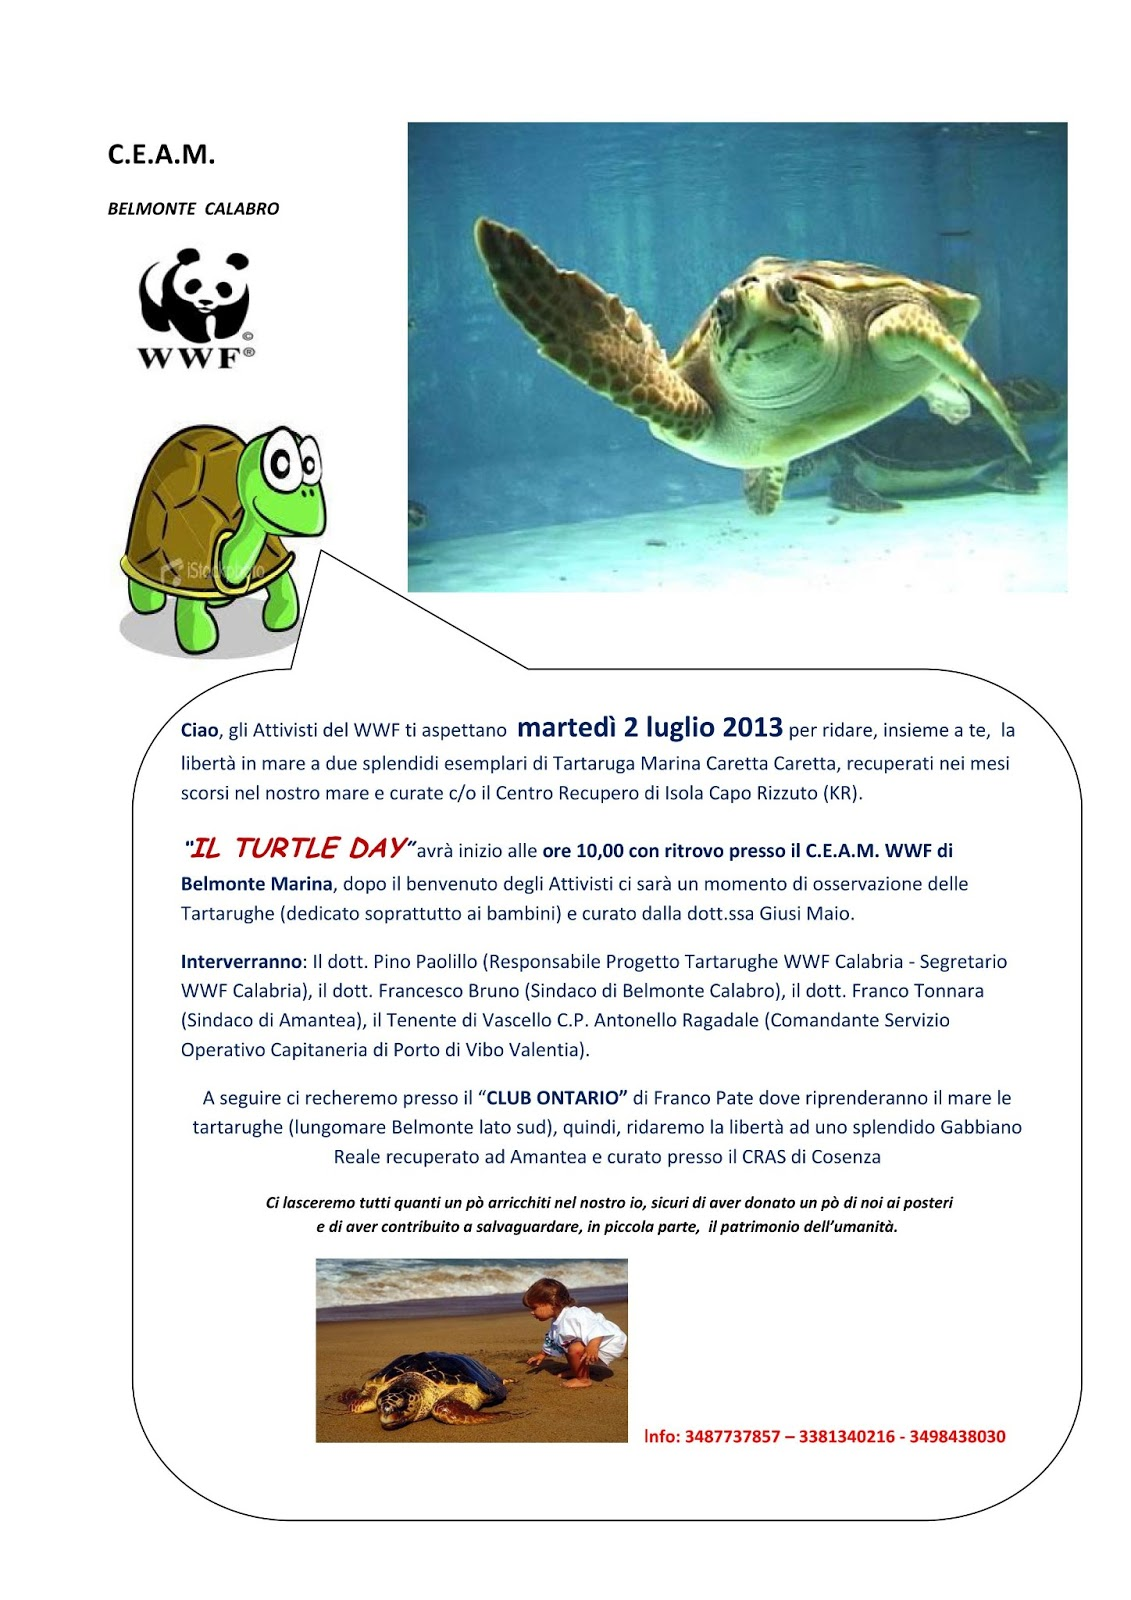 Thumbnail image for /public/upload/2013/7/635082710221584908_Turtle Day 2013.jpg